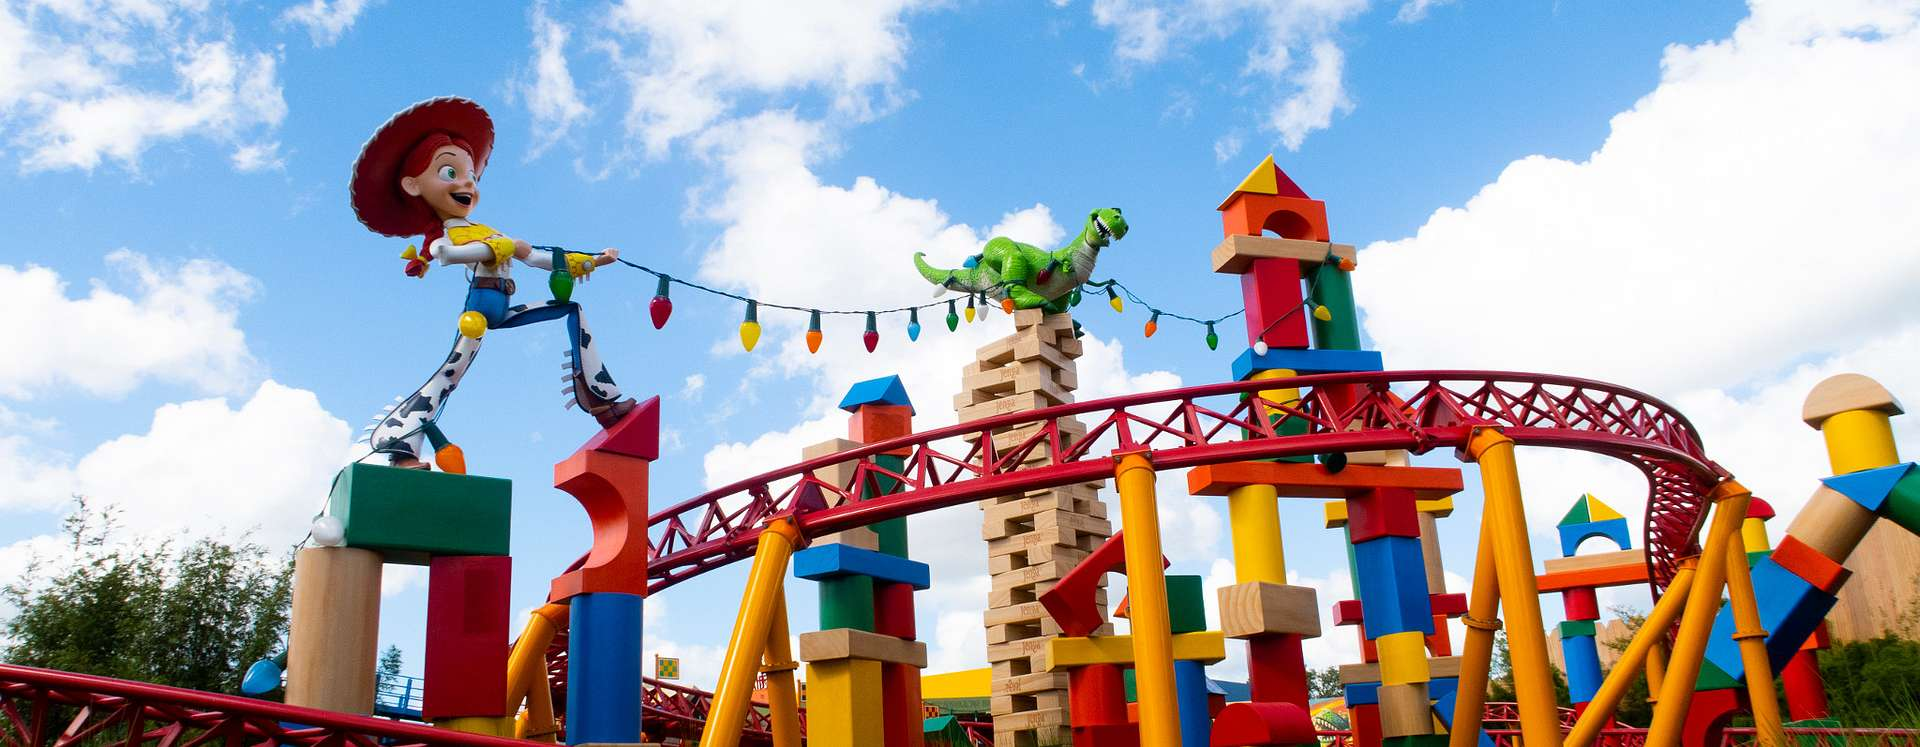 Slinky Dog Dash at Toy Story Land in Disney's Hollywood Studios